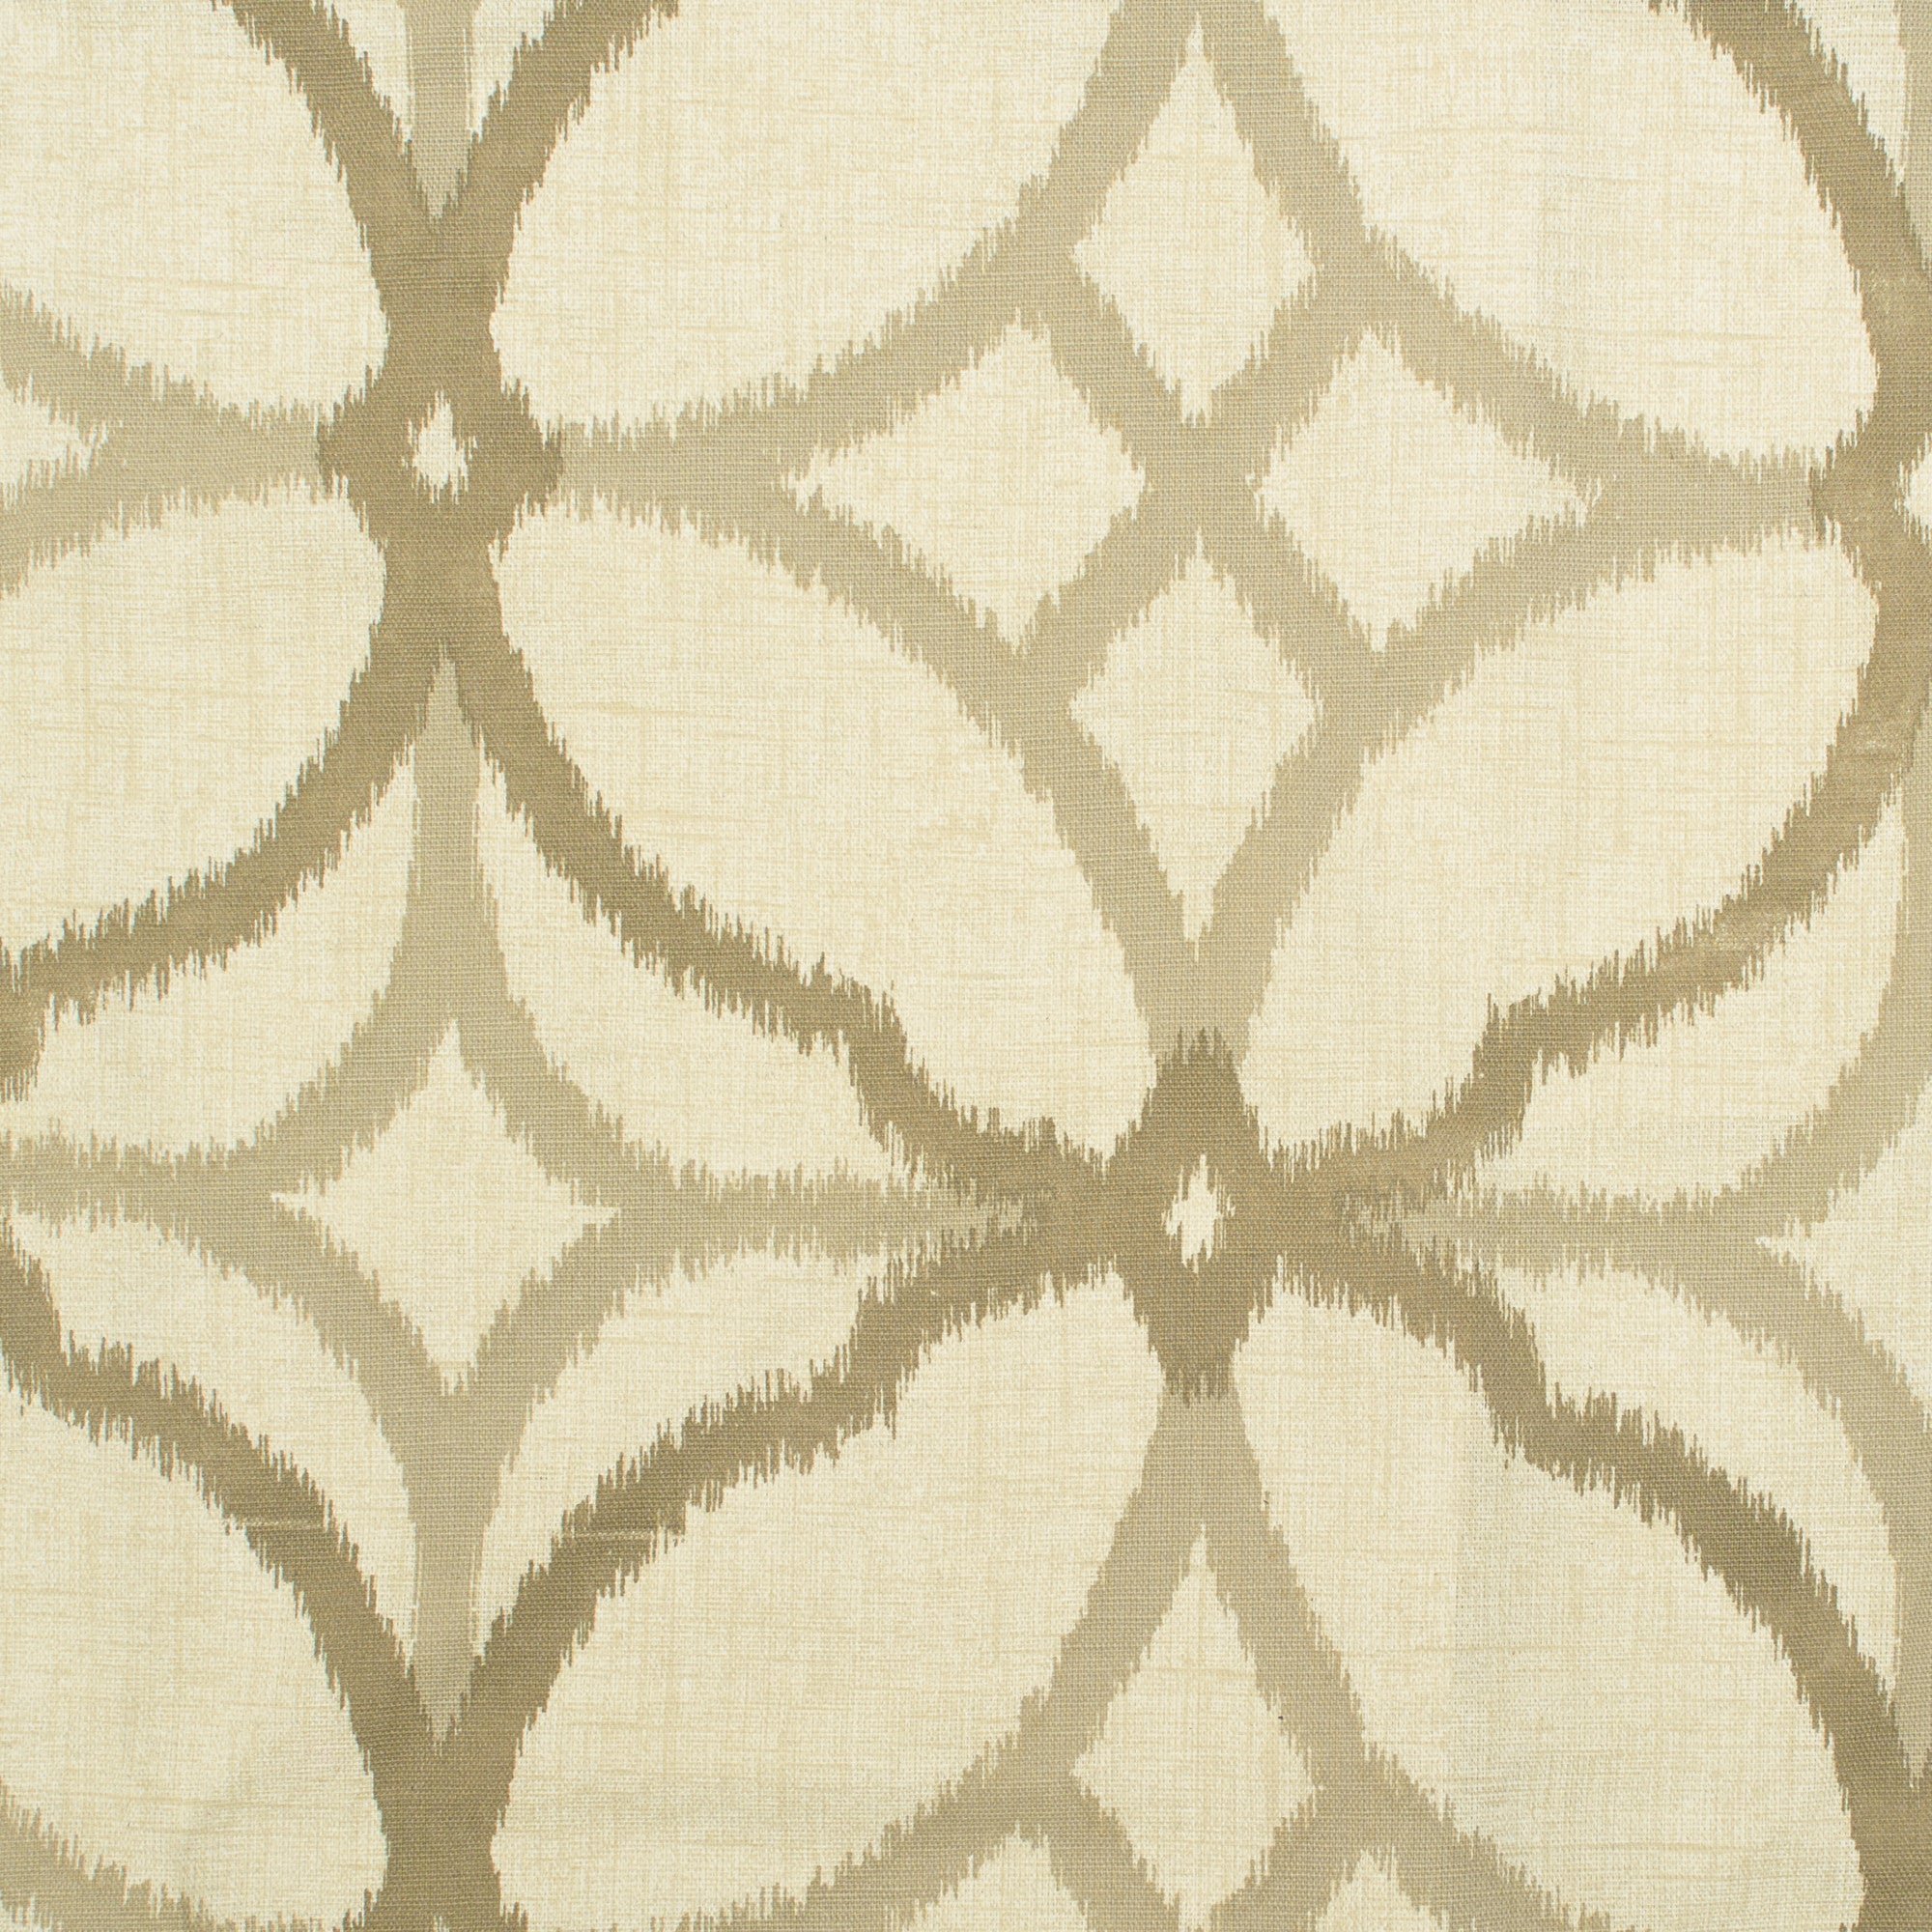 LR Resources DRAPES AND CURTAINS 17011 Beige